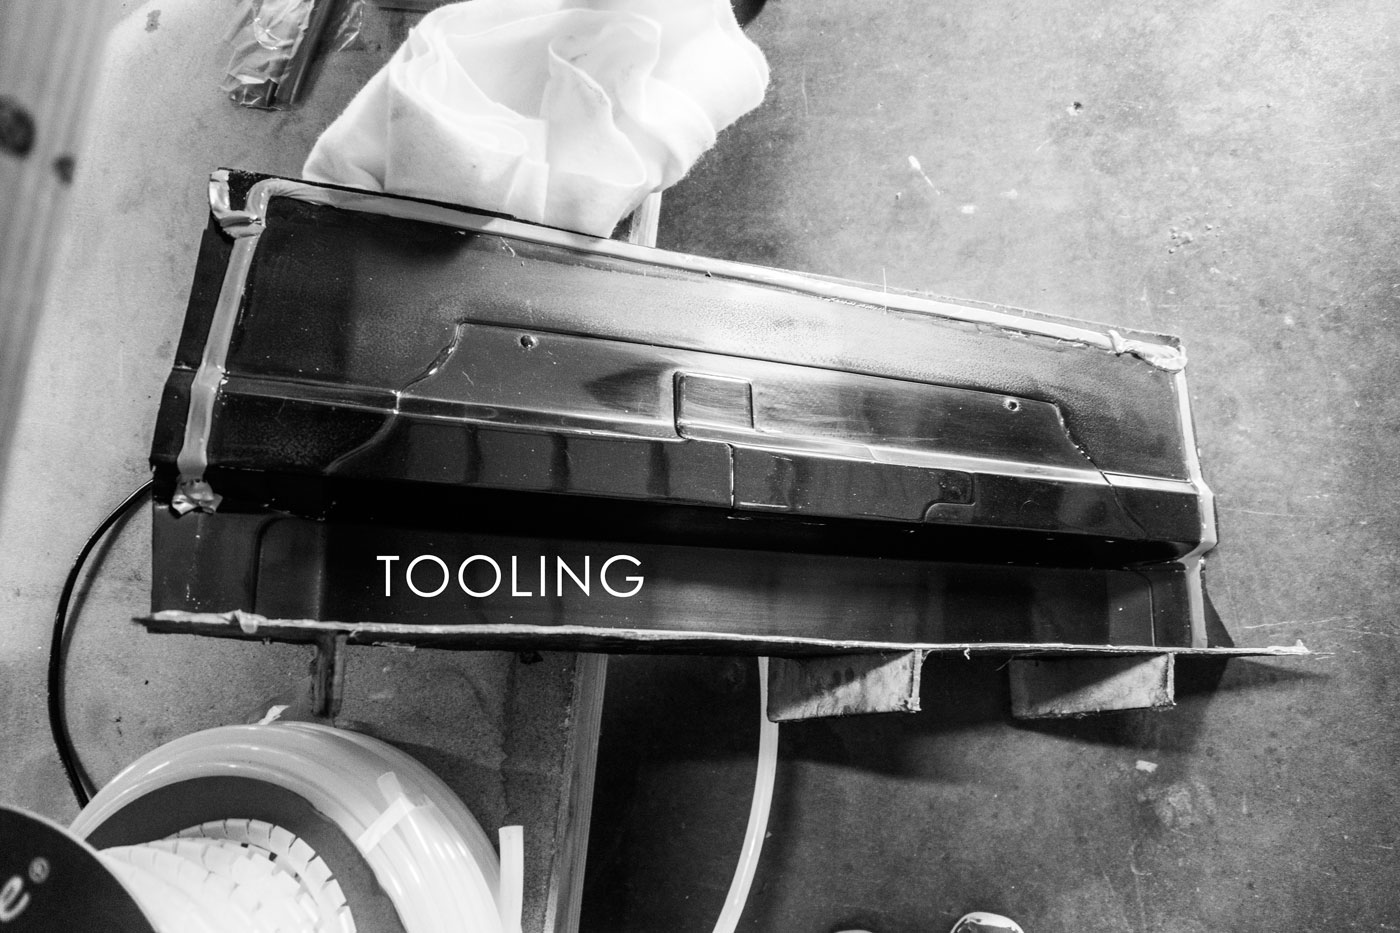 Tooling - Tooling is often the most expensive part of a project. Whether it is hand shaped foam, laser cut wood, splash molded fiberglass, or CNC machined metal tooling, we got you covered for any budget.